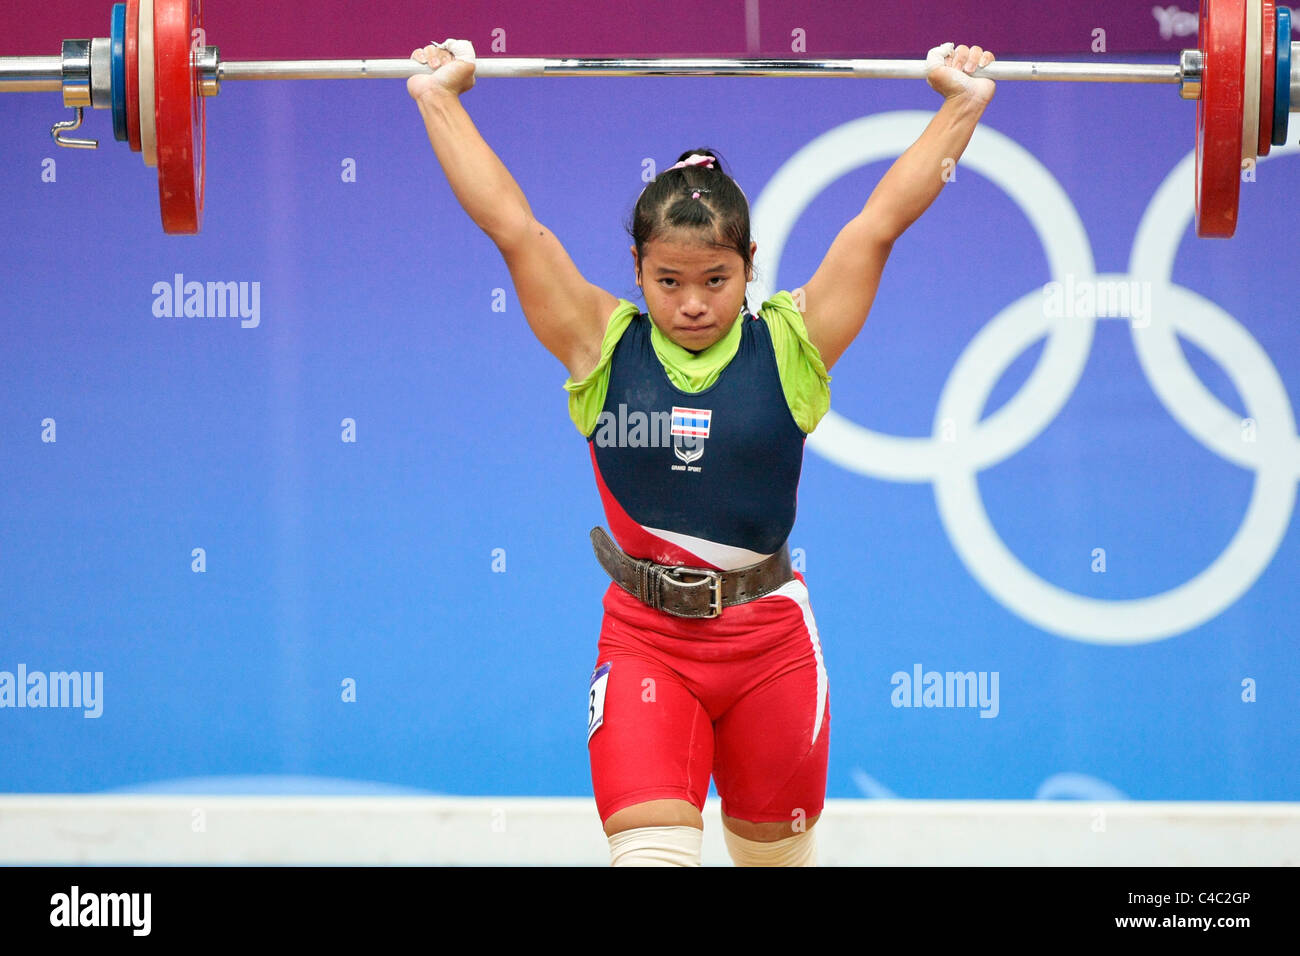 Thailand's Sirivimon Pramongkhol in action during her clean and jerk routine. - Stock Image